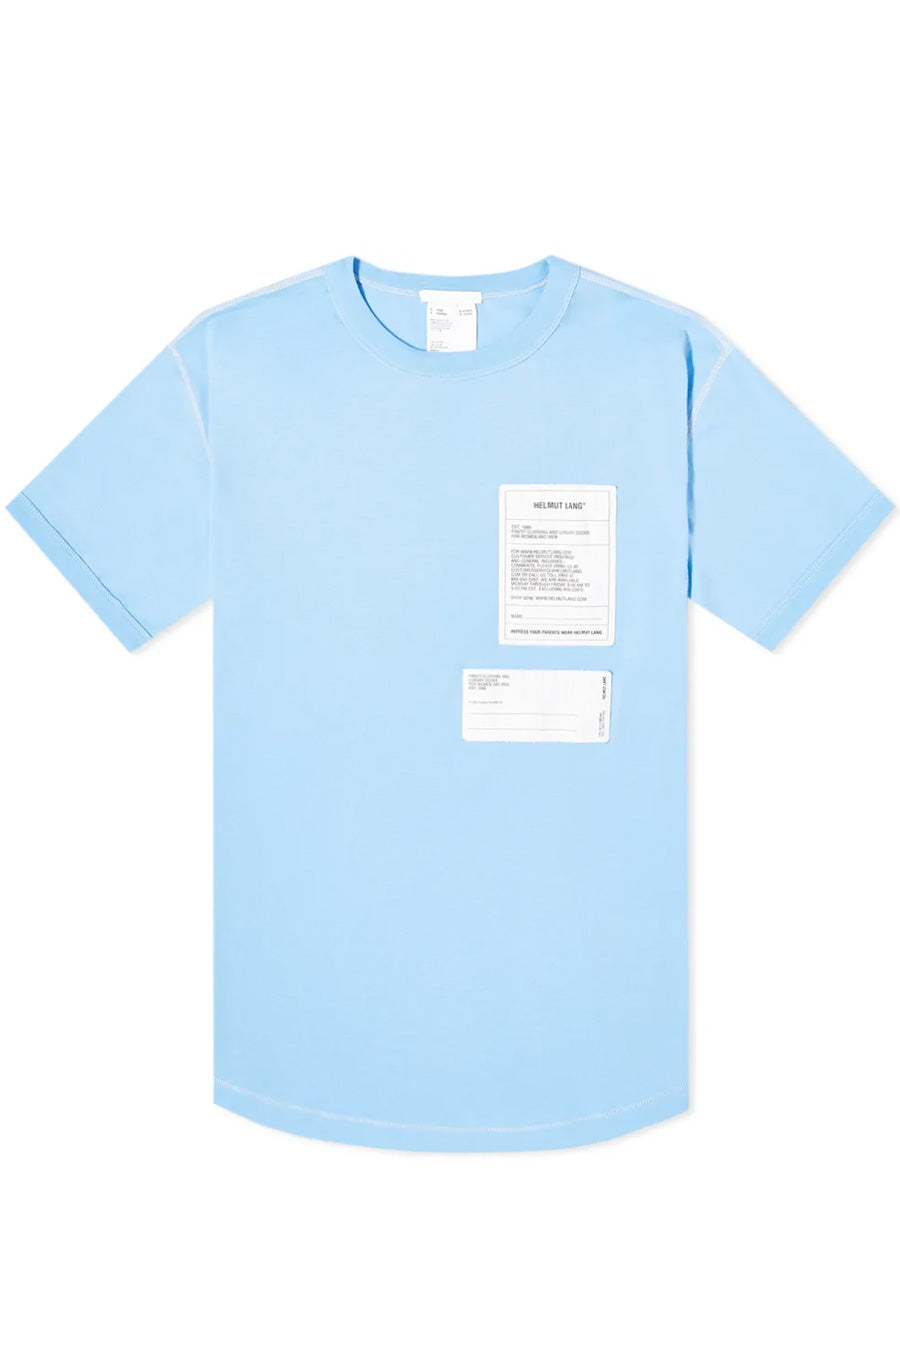 Helmut Lang - Blue Cotton Patch T-Shirt